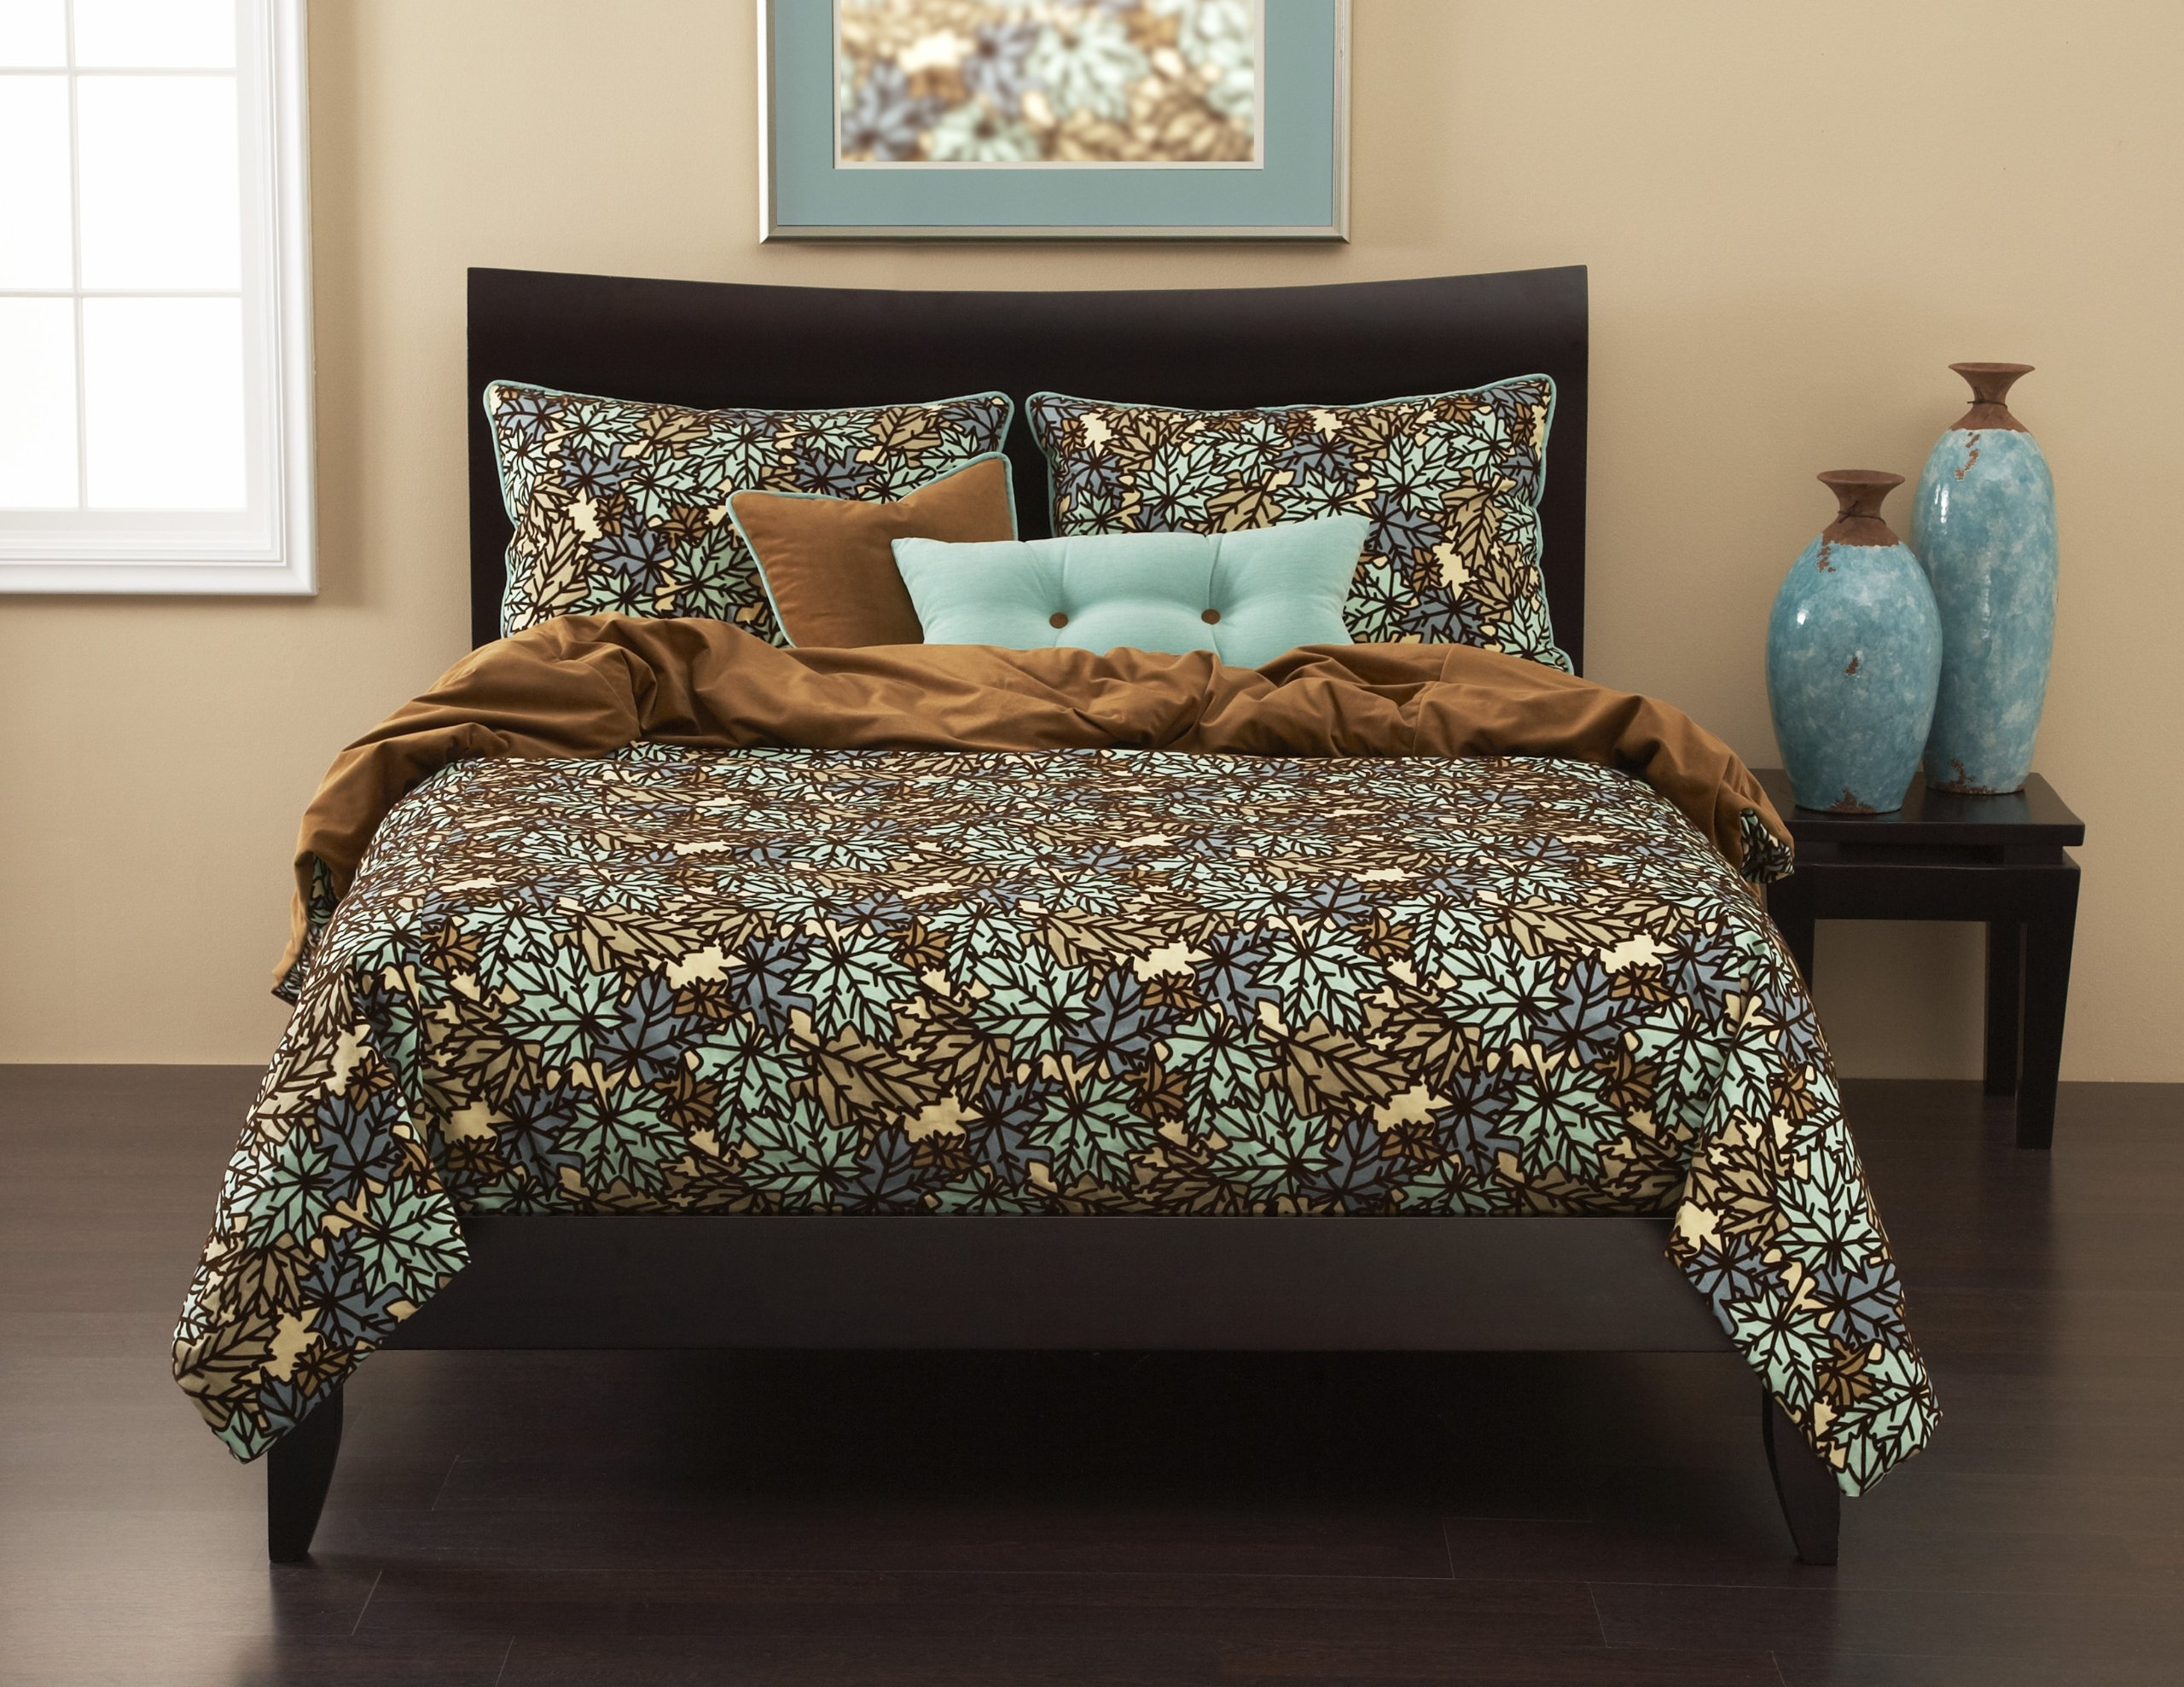 Siscovers 5-Piece Press Leaf Spa Duvet Set, Twin by SIS Covers (Image #1)